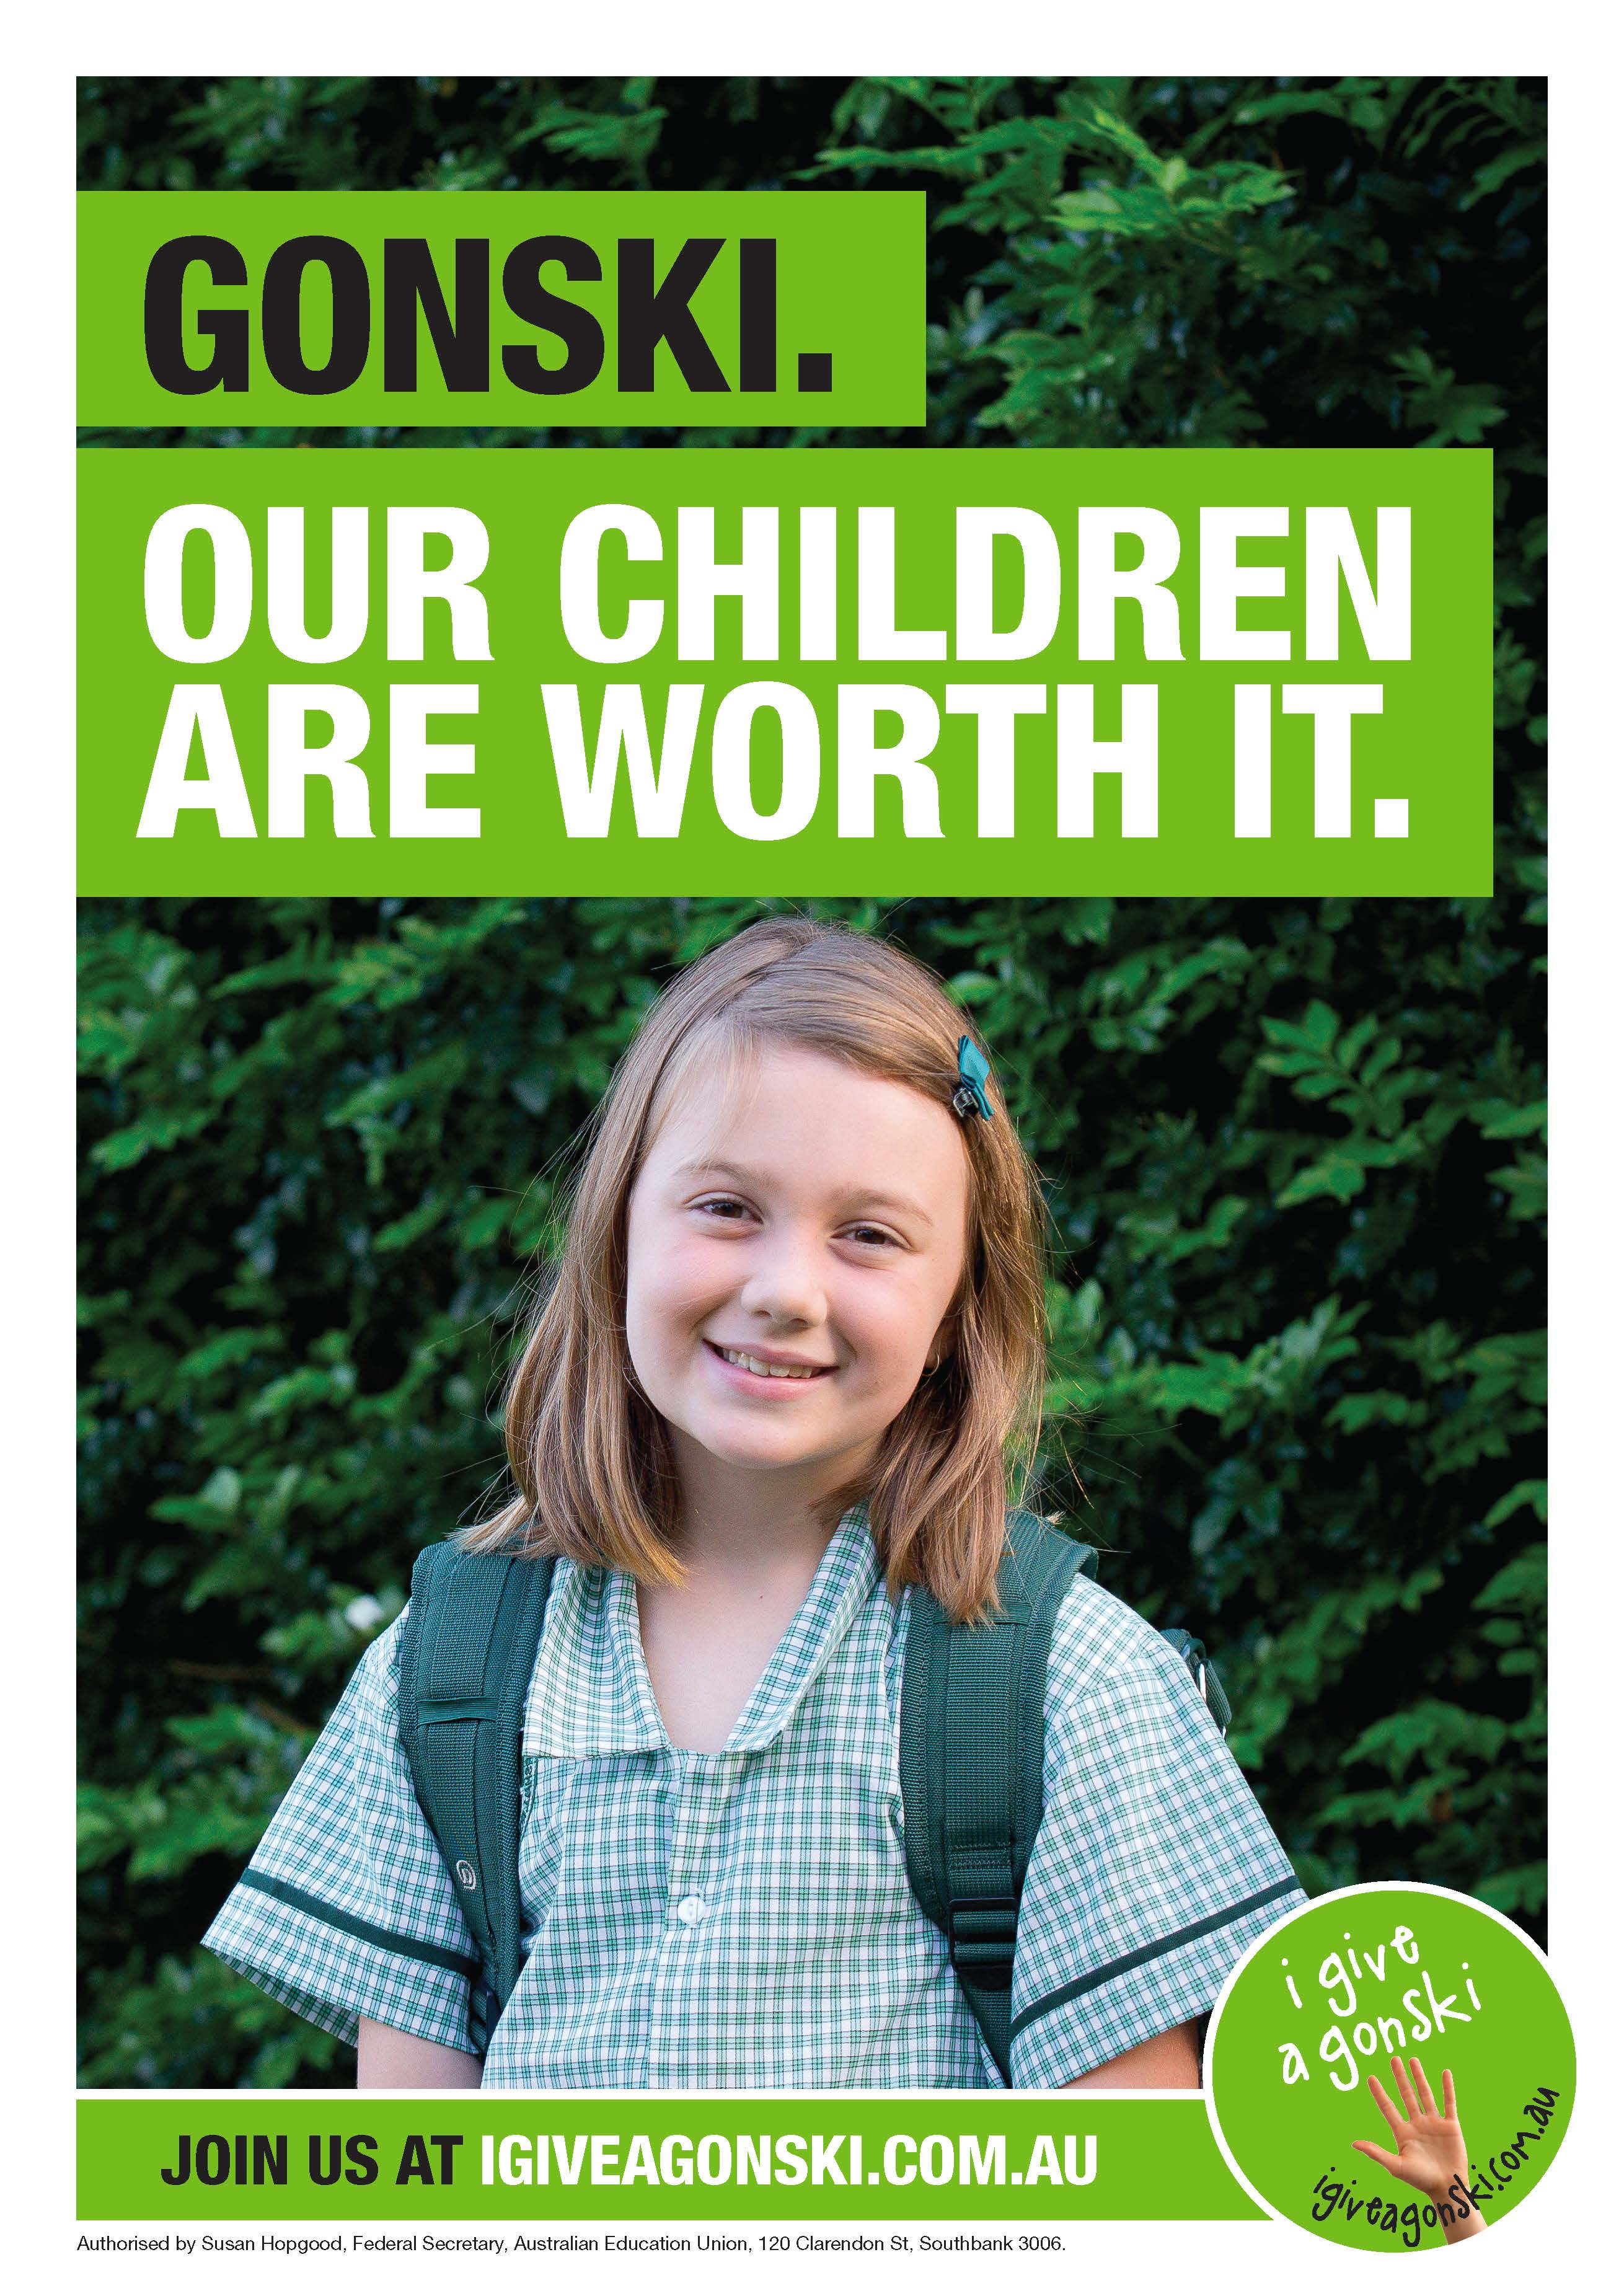 Gonski our children are worth it poster